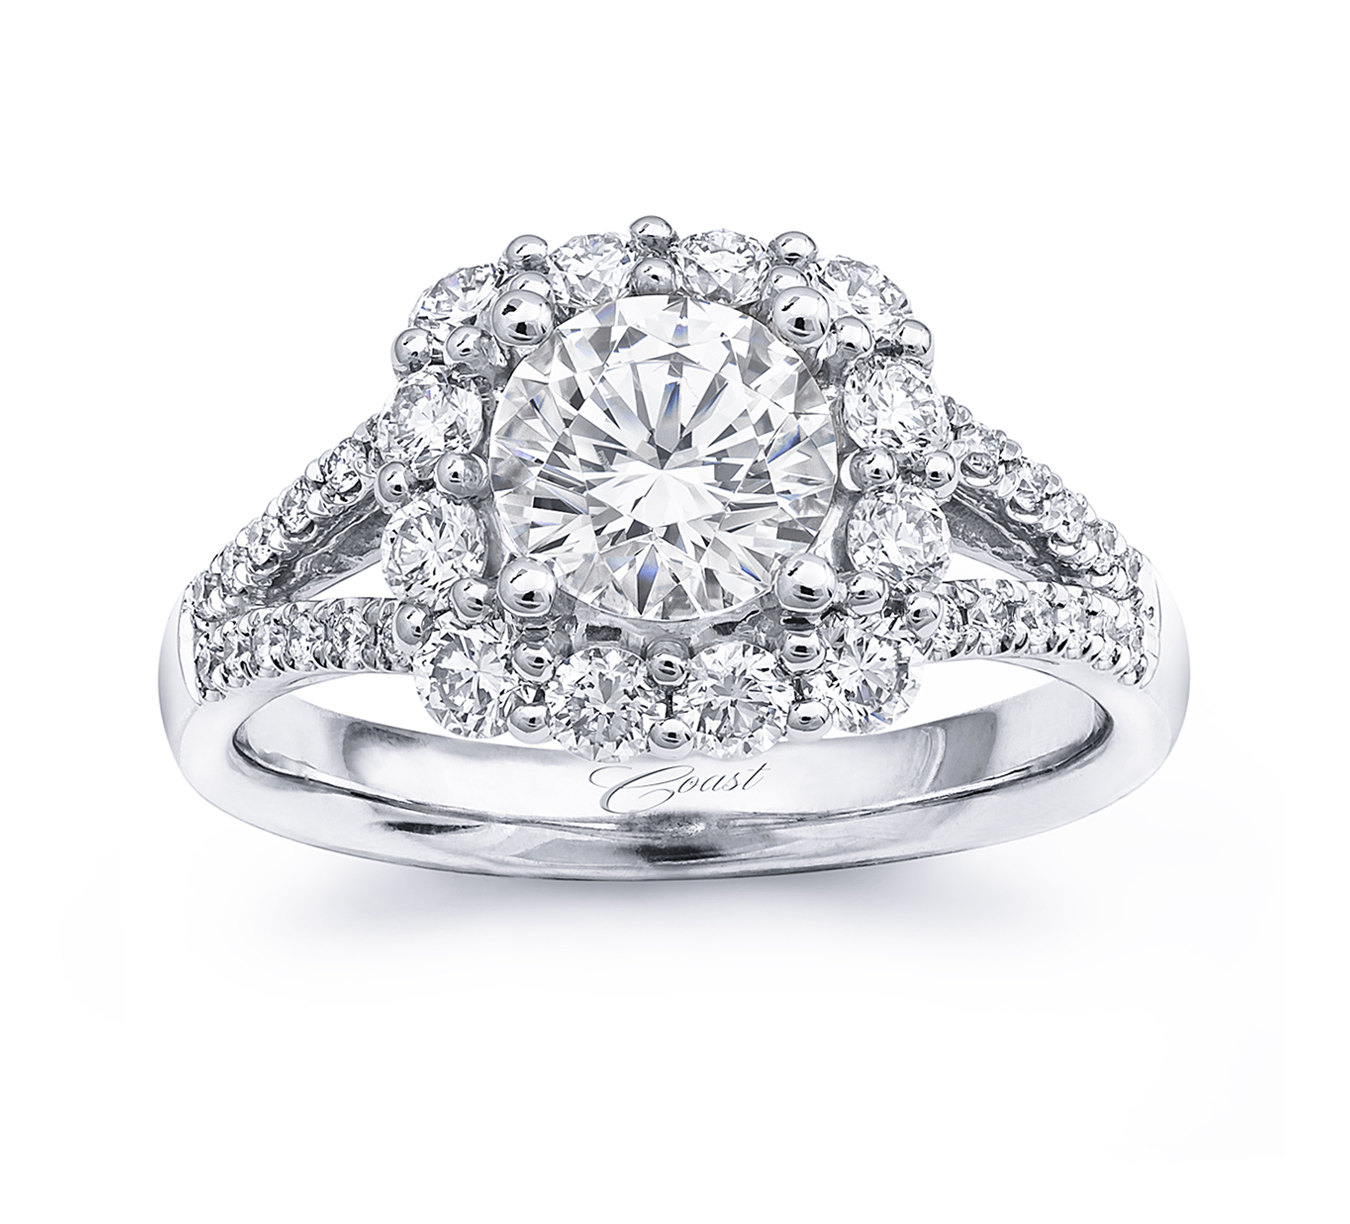 Charisma Engagement Ring - Large Cushion Halo